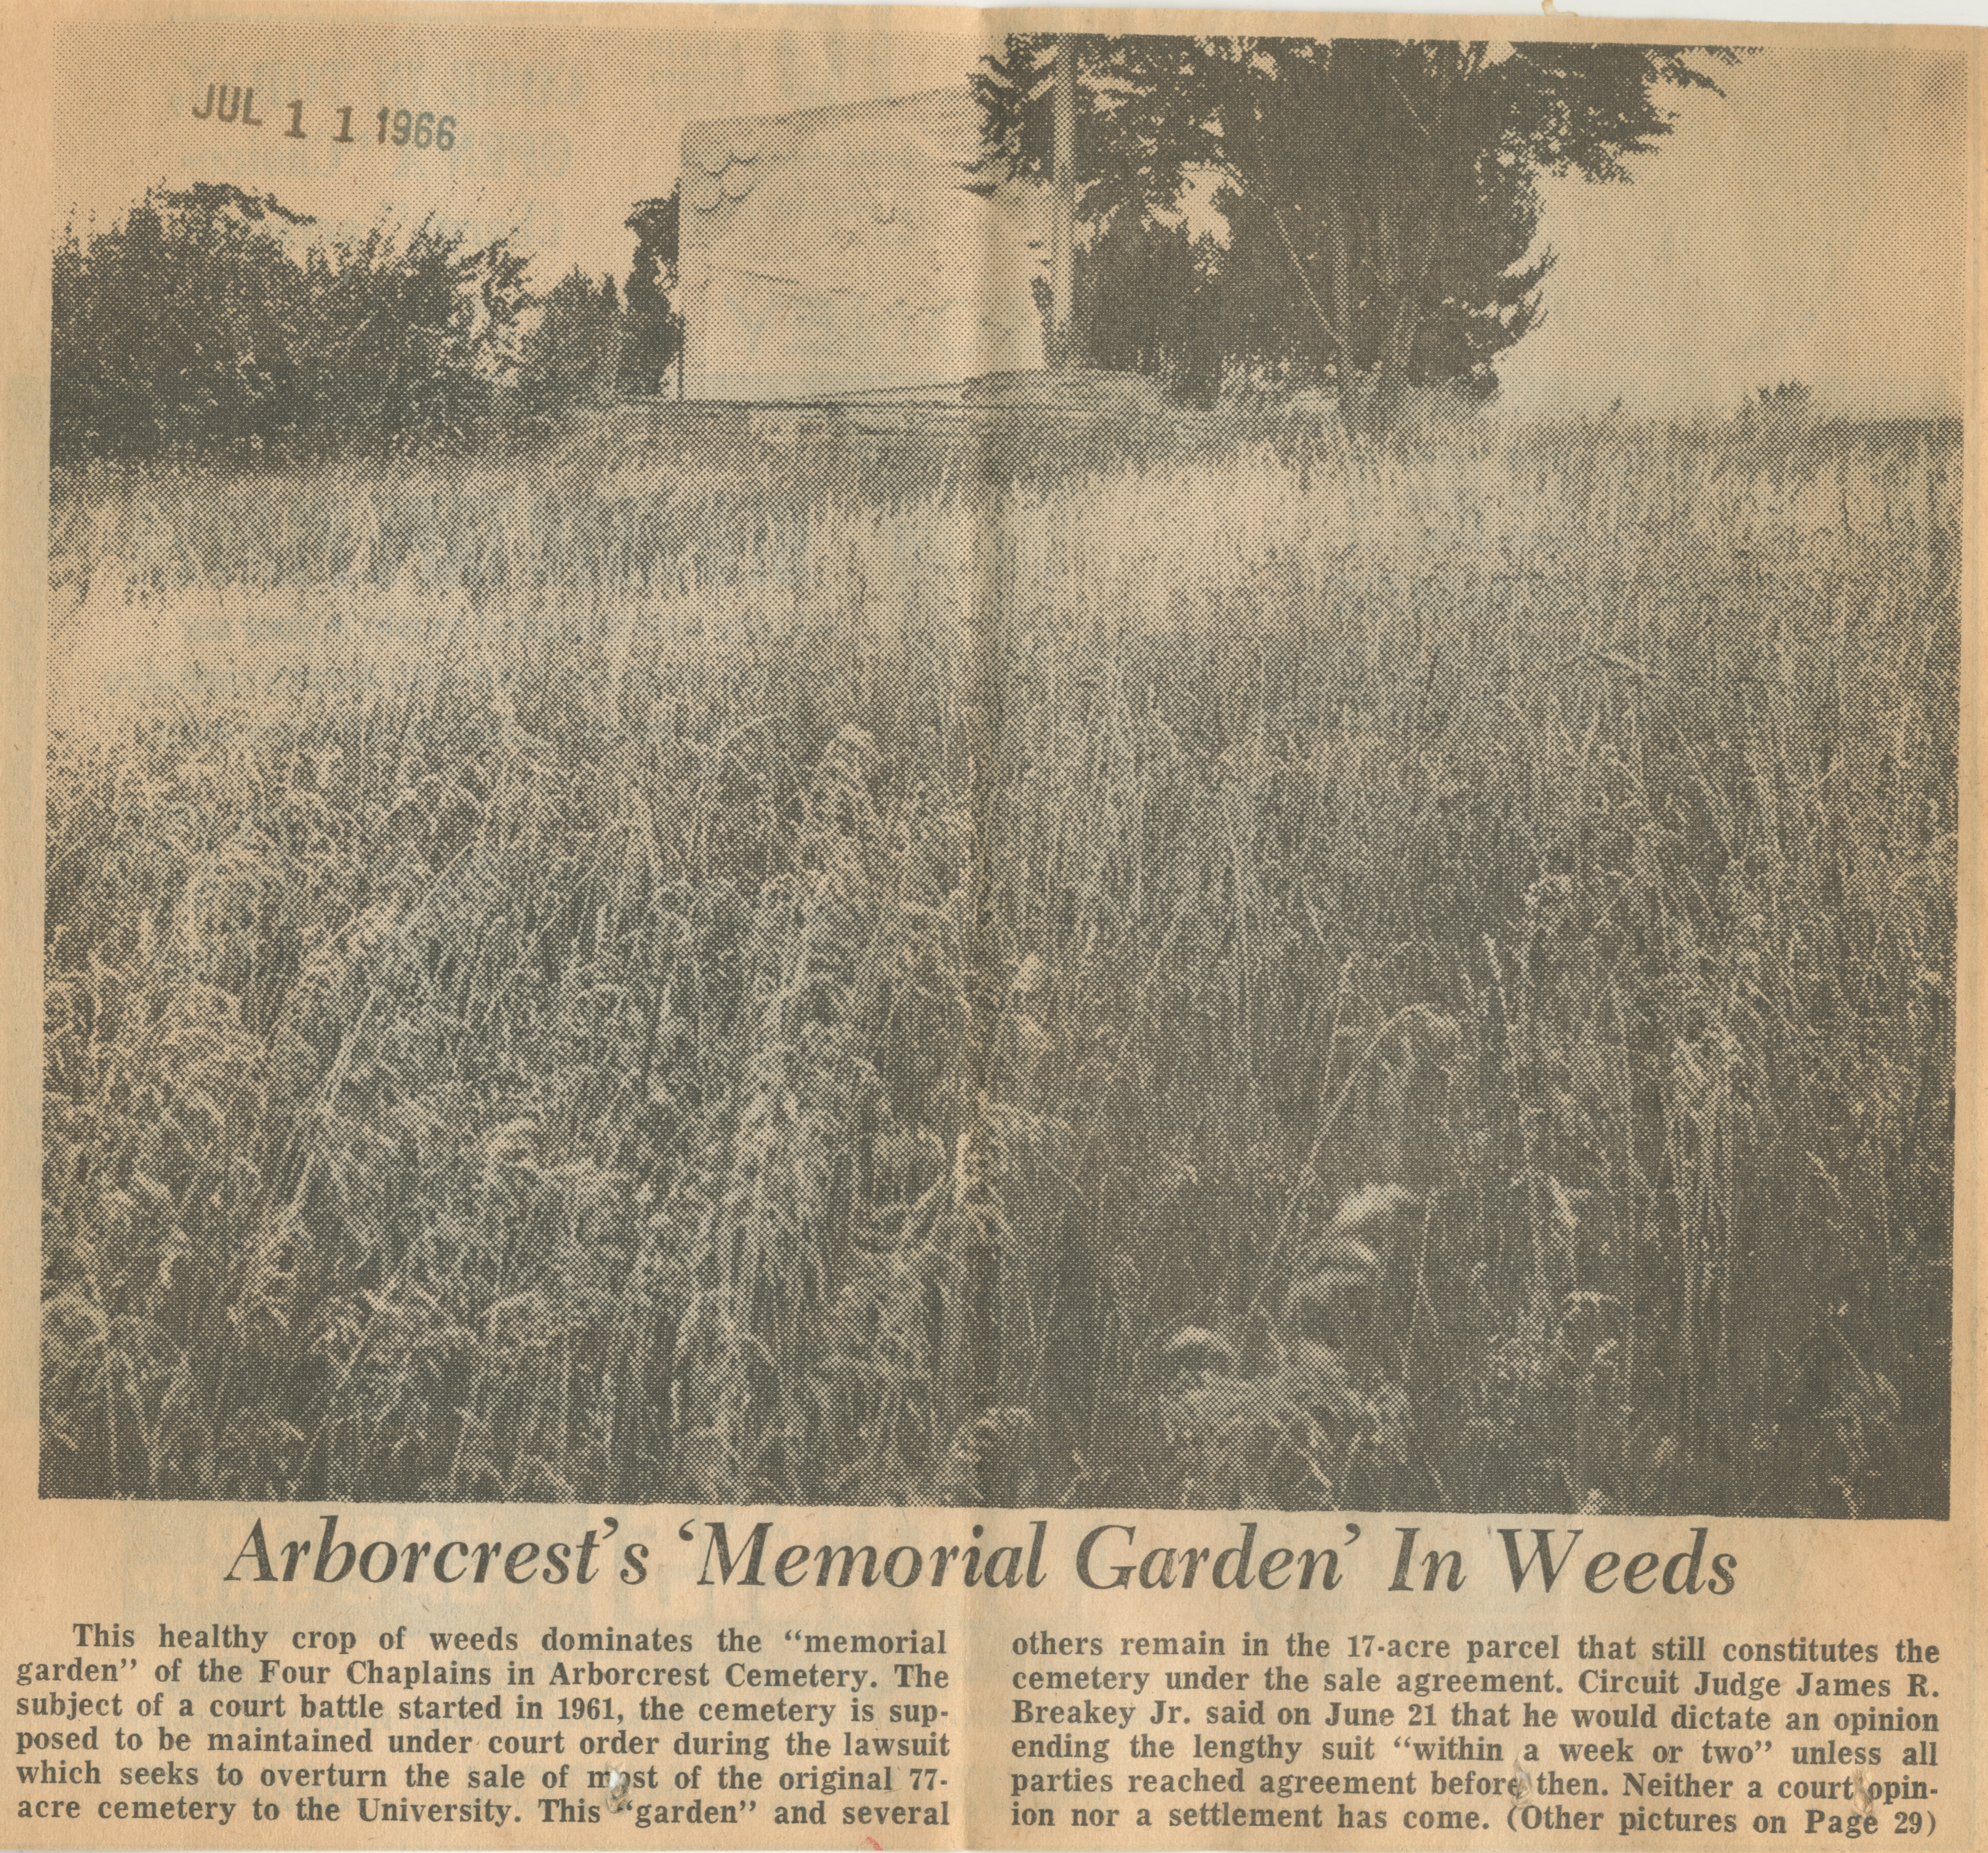 Arborcrest's 'Memorial Garden' In Weeds image